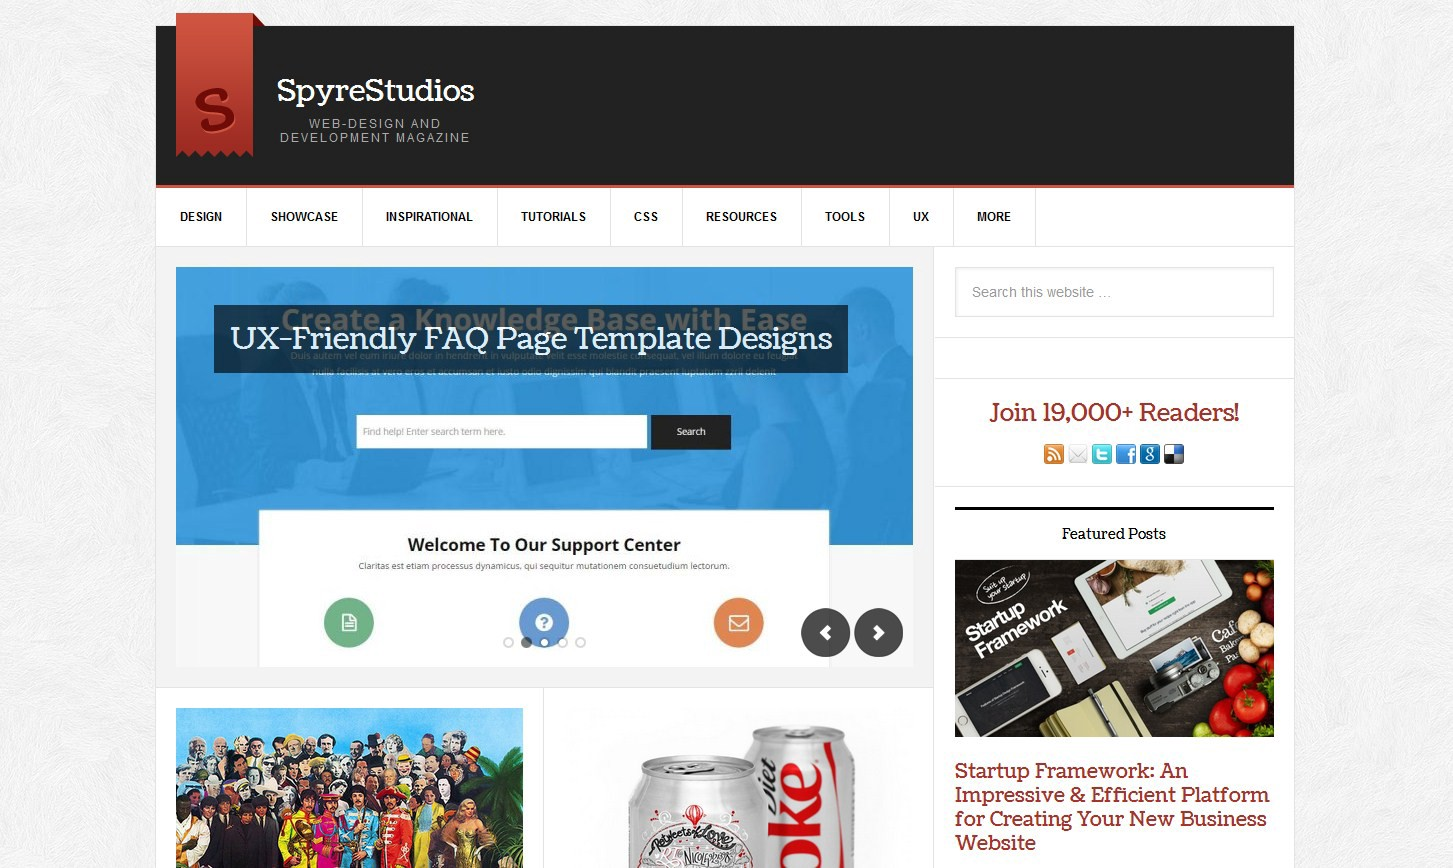 Top blogs about web design and web development web development this is a web design and development magazine with lots of articles and tutorials categories include design showcase inspirational tutorials css baditri Images